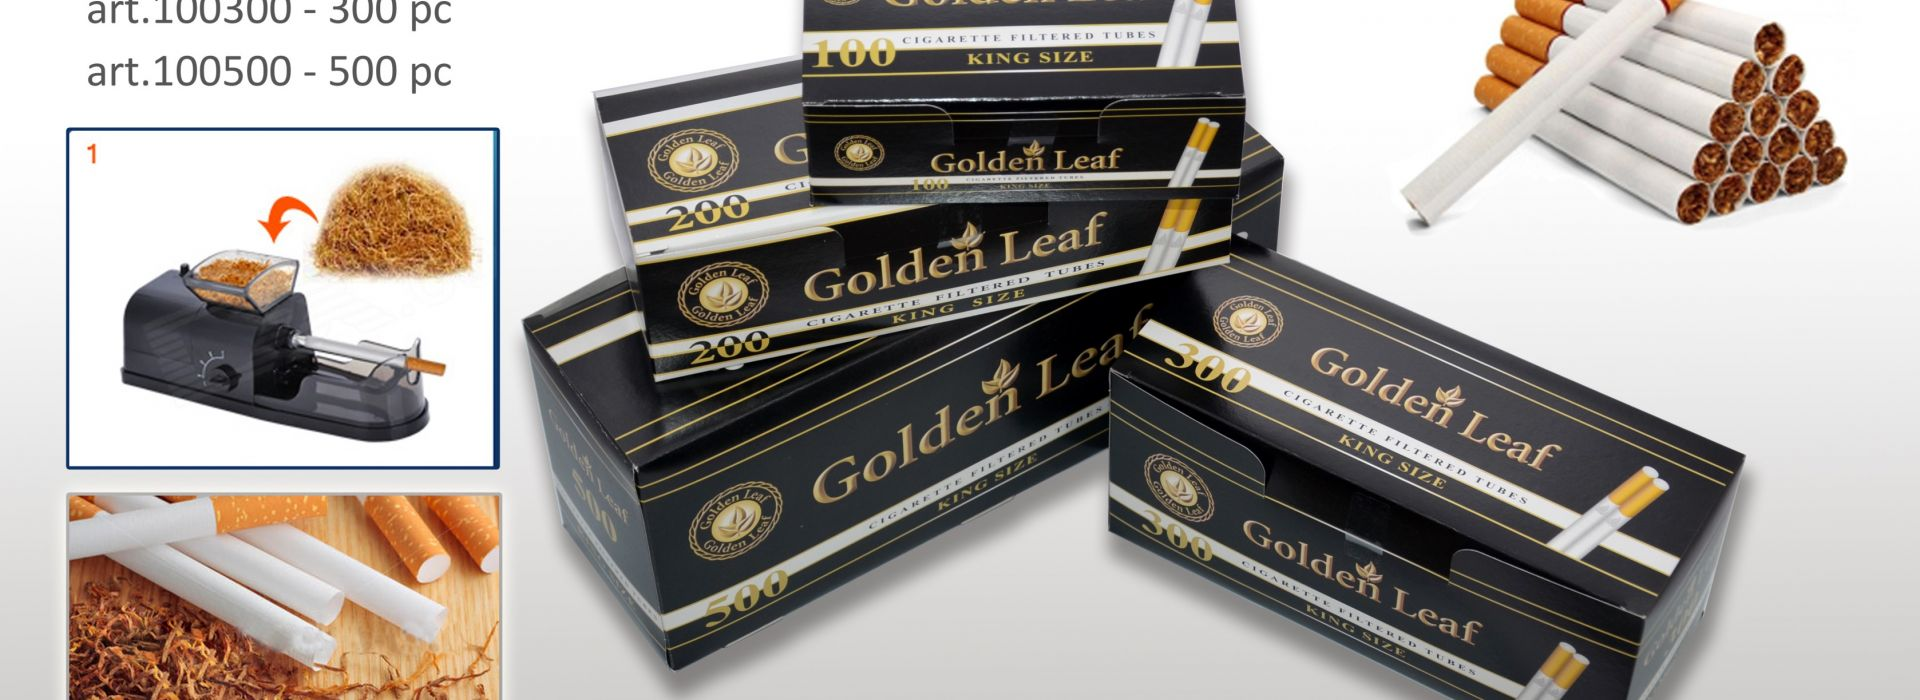 Гильзы Golden Leaf 500 штук оптом